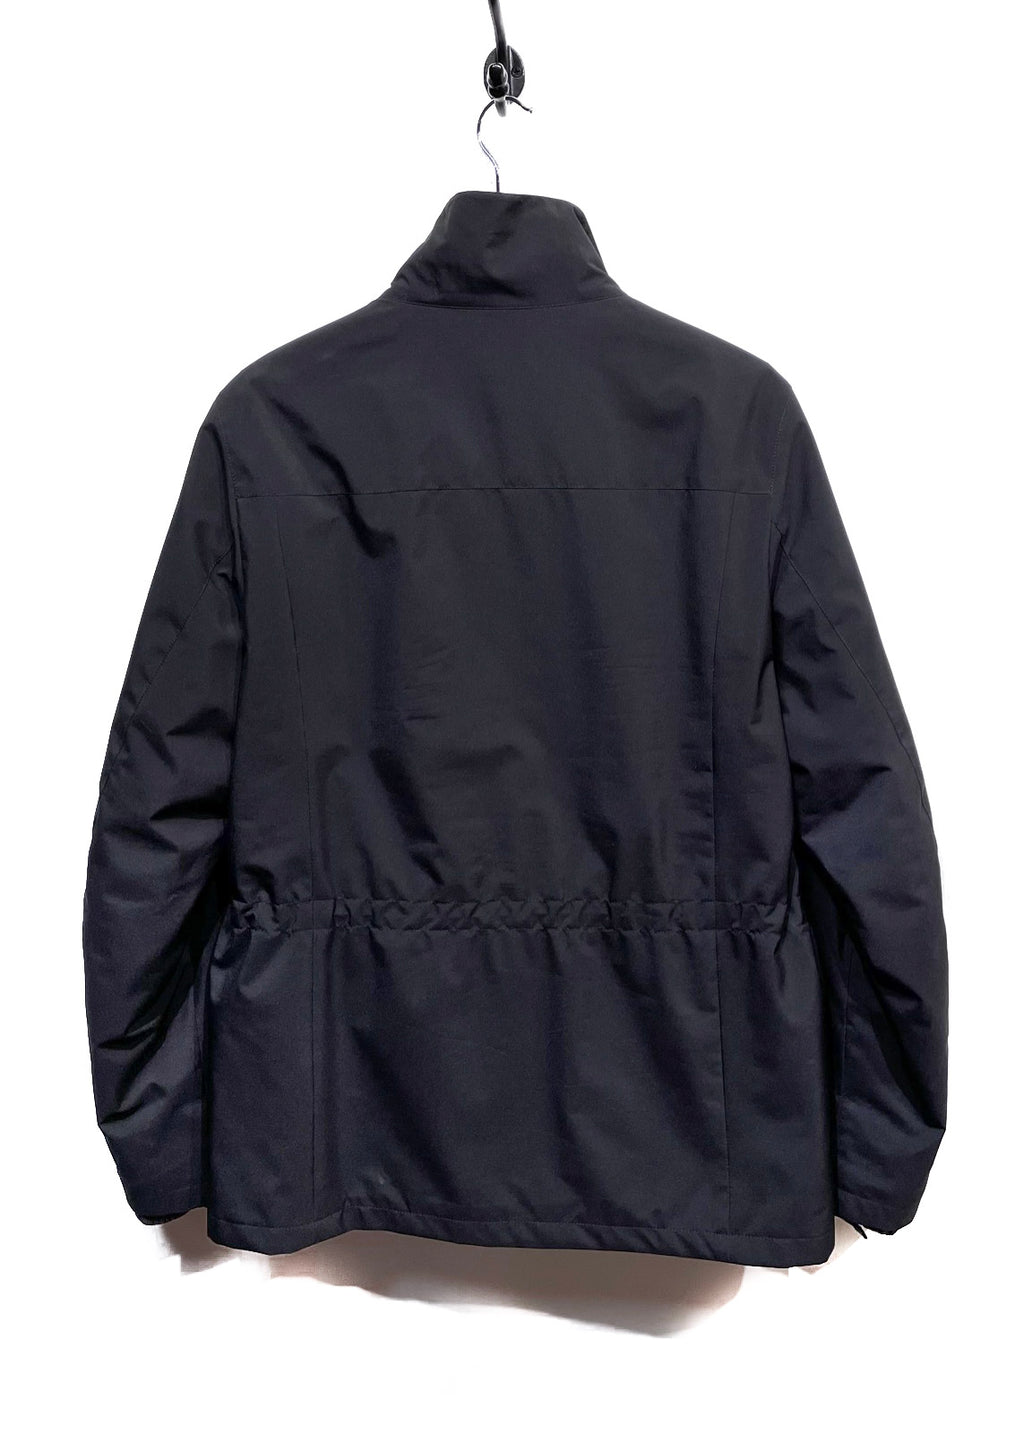 Prada Linea Rossa Black Convertible Windbreaker Jacket